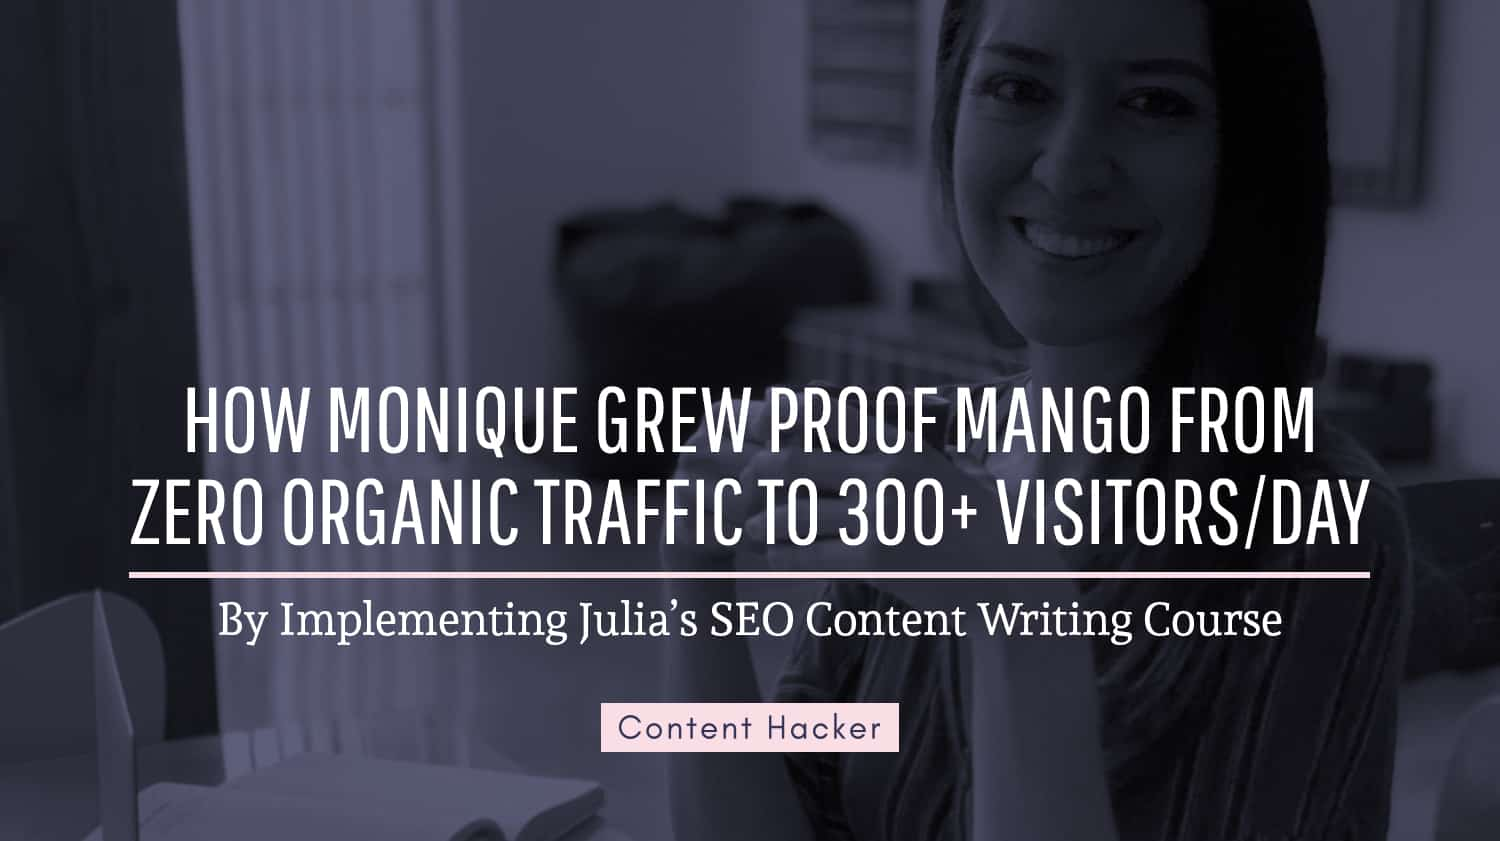 Proof Mango and SEO content writing